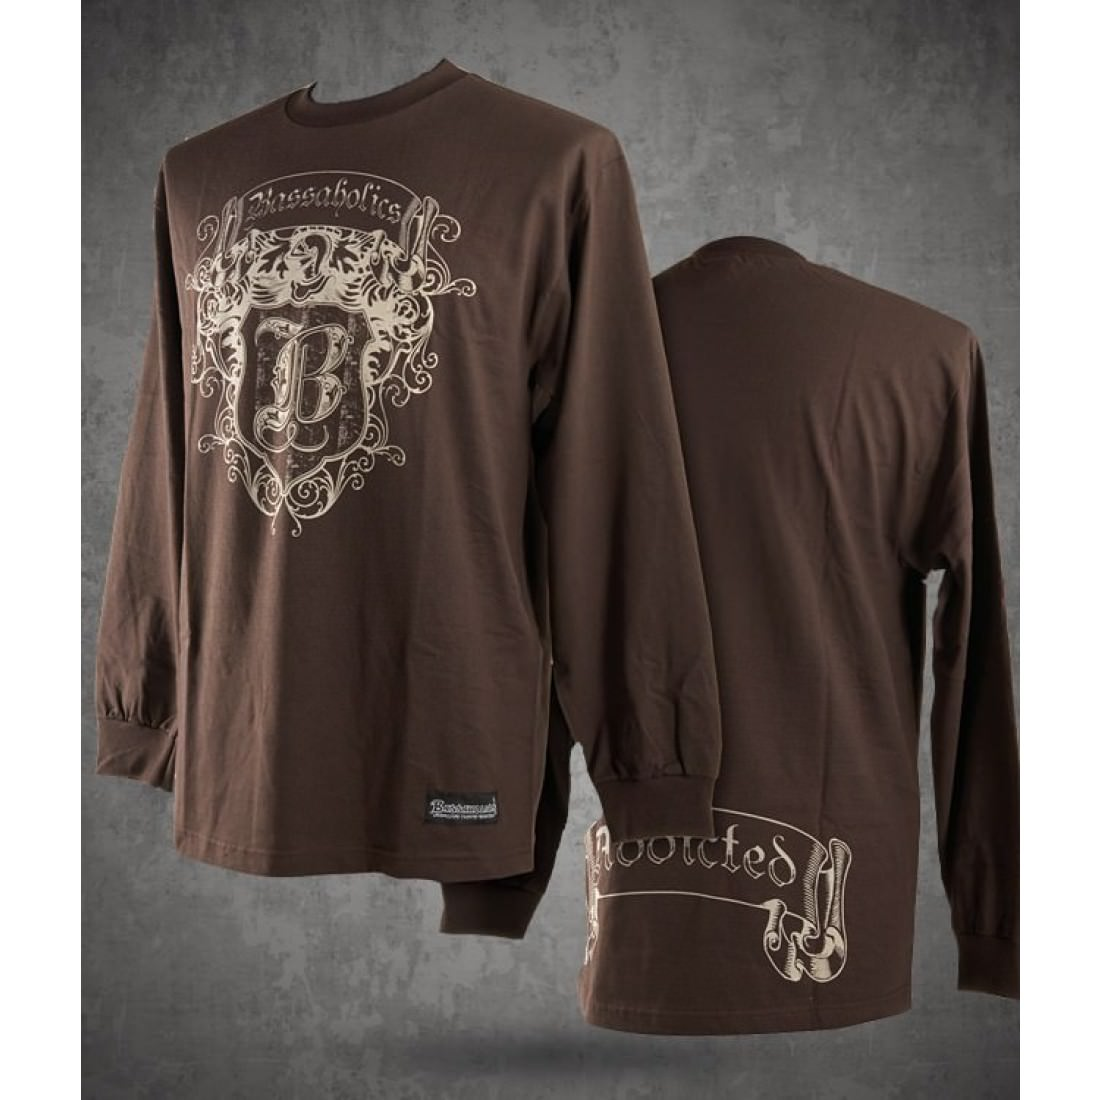 Coat of Arms Long Sleeve Shirt Brown